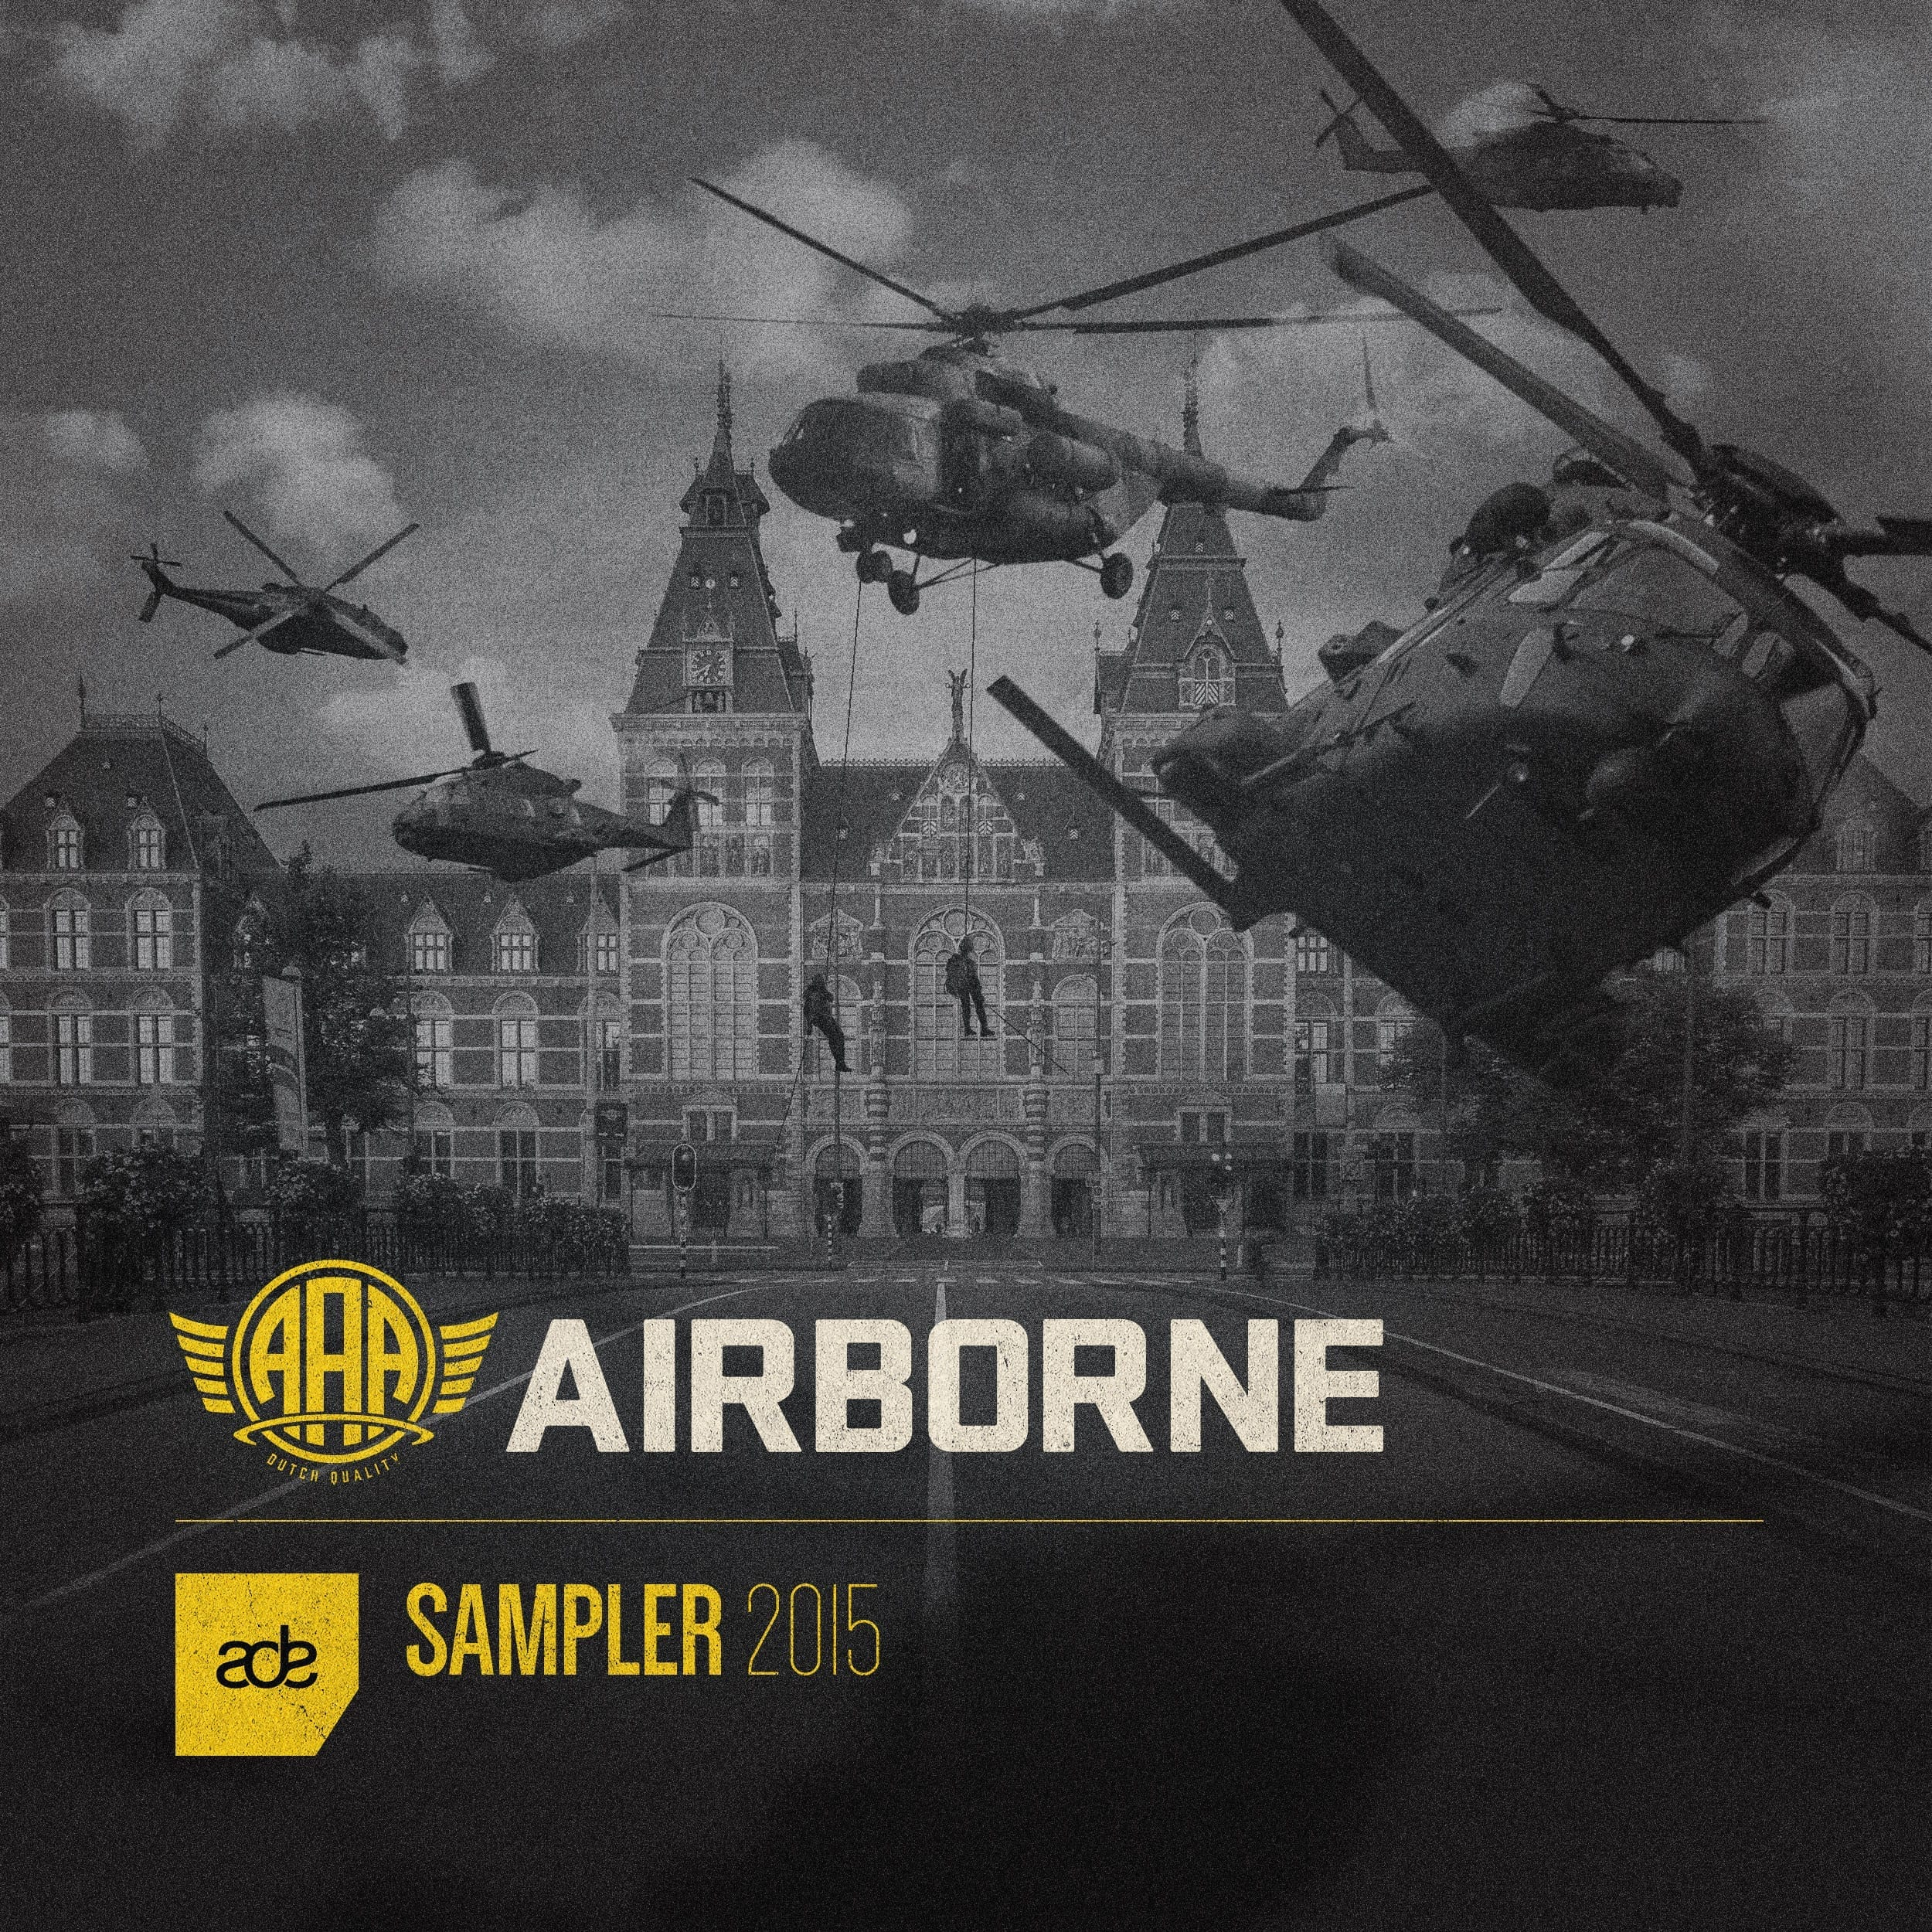 THE ESSENTIAL ADE SAMPLER OF 2015 HAS ARRIVED!